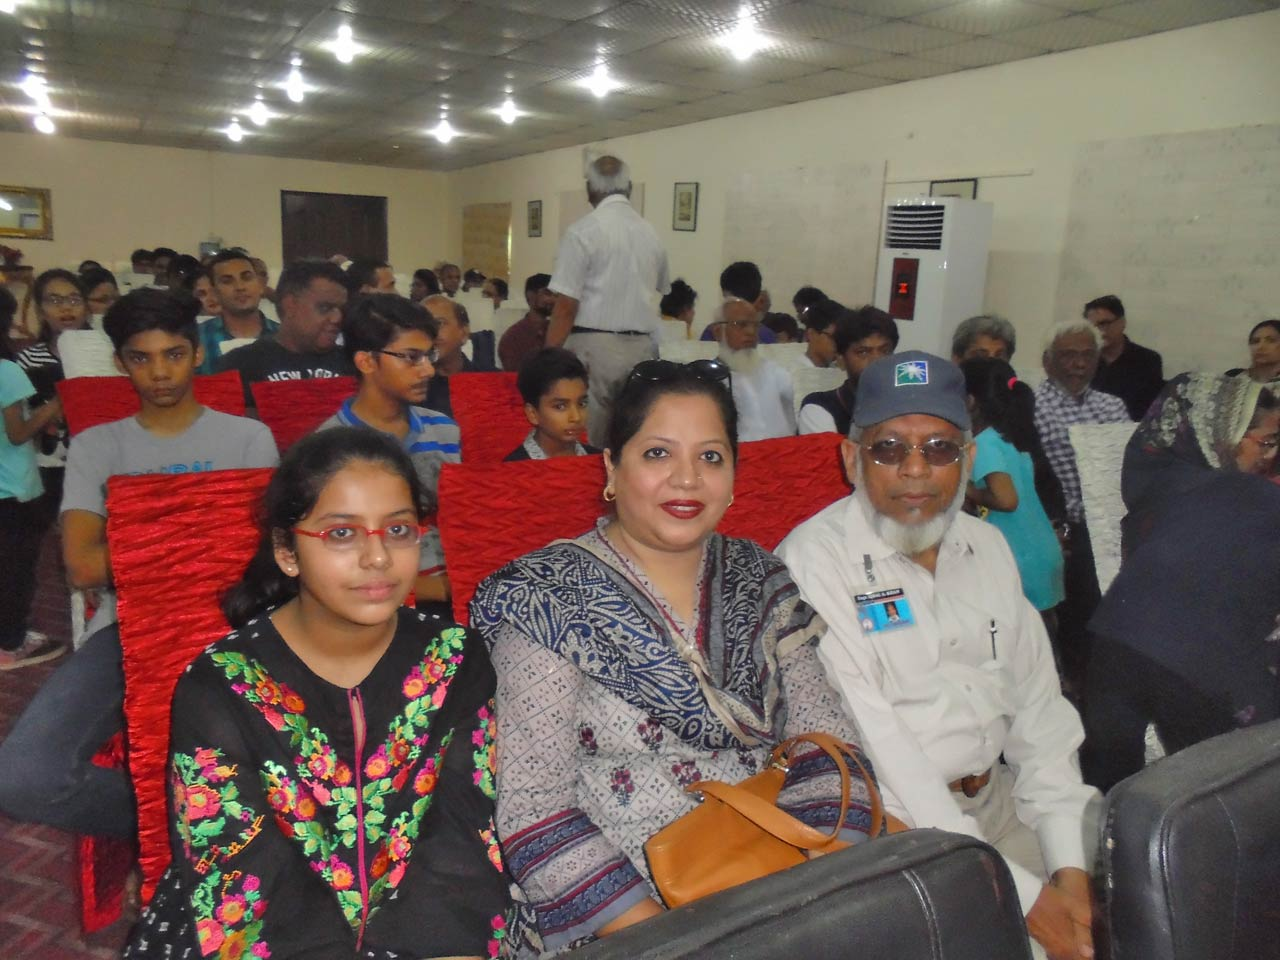 Mariam A. Rehman, Dr. Kiran A. Rehman and Engr. Iqbal Ahmed Khan